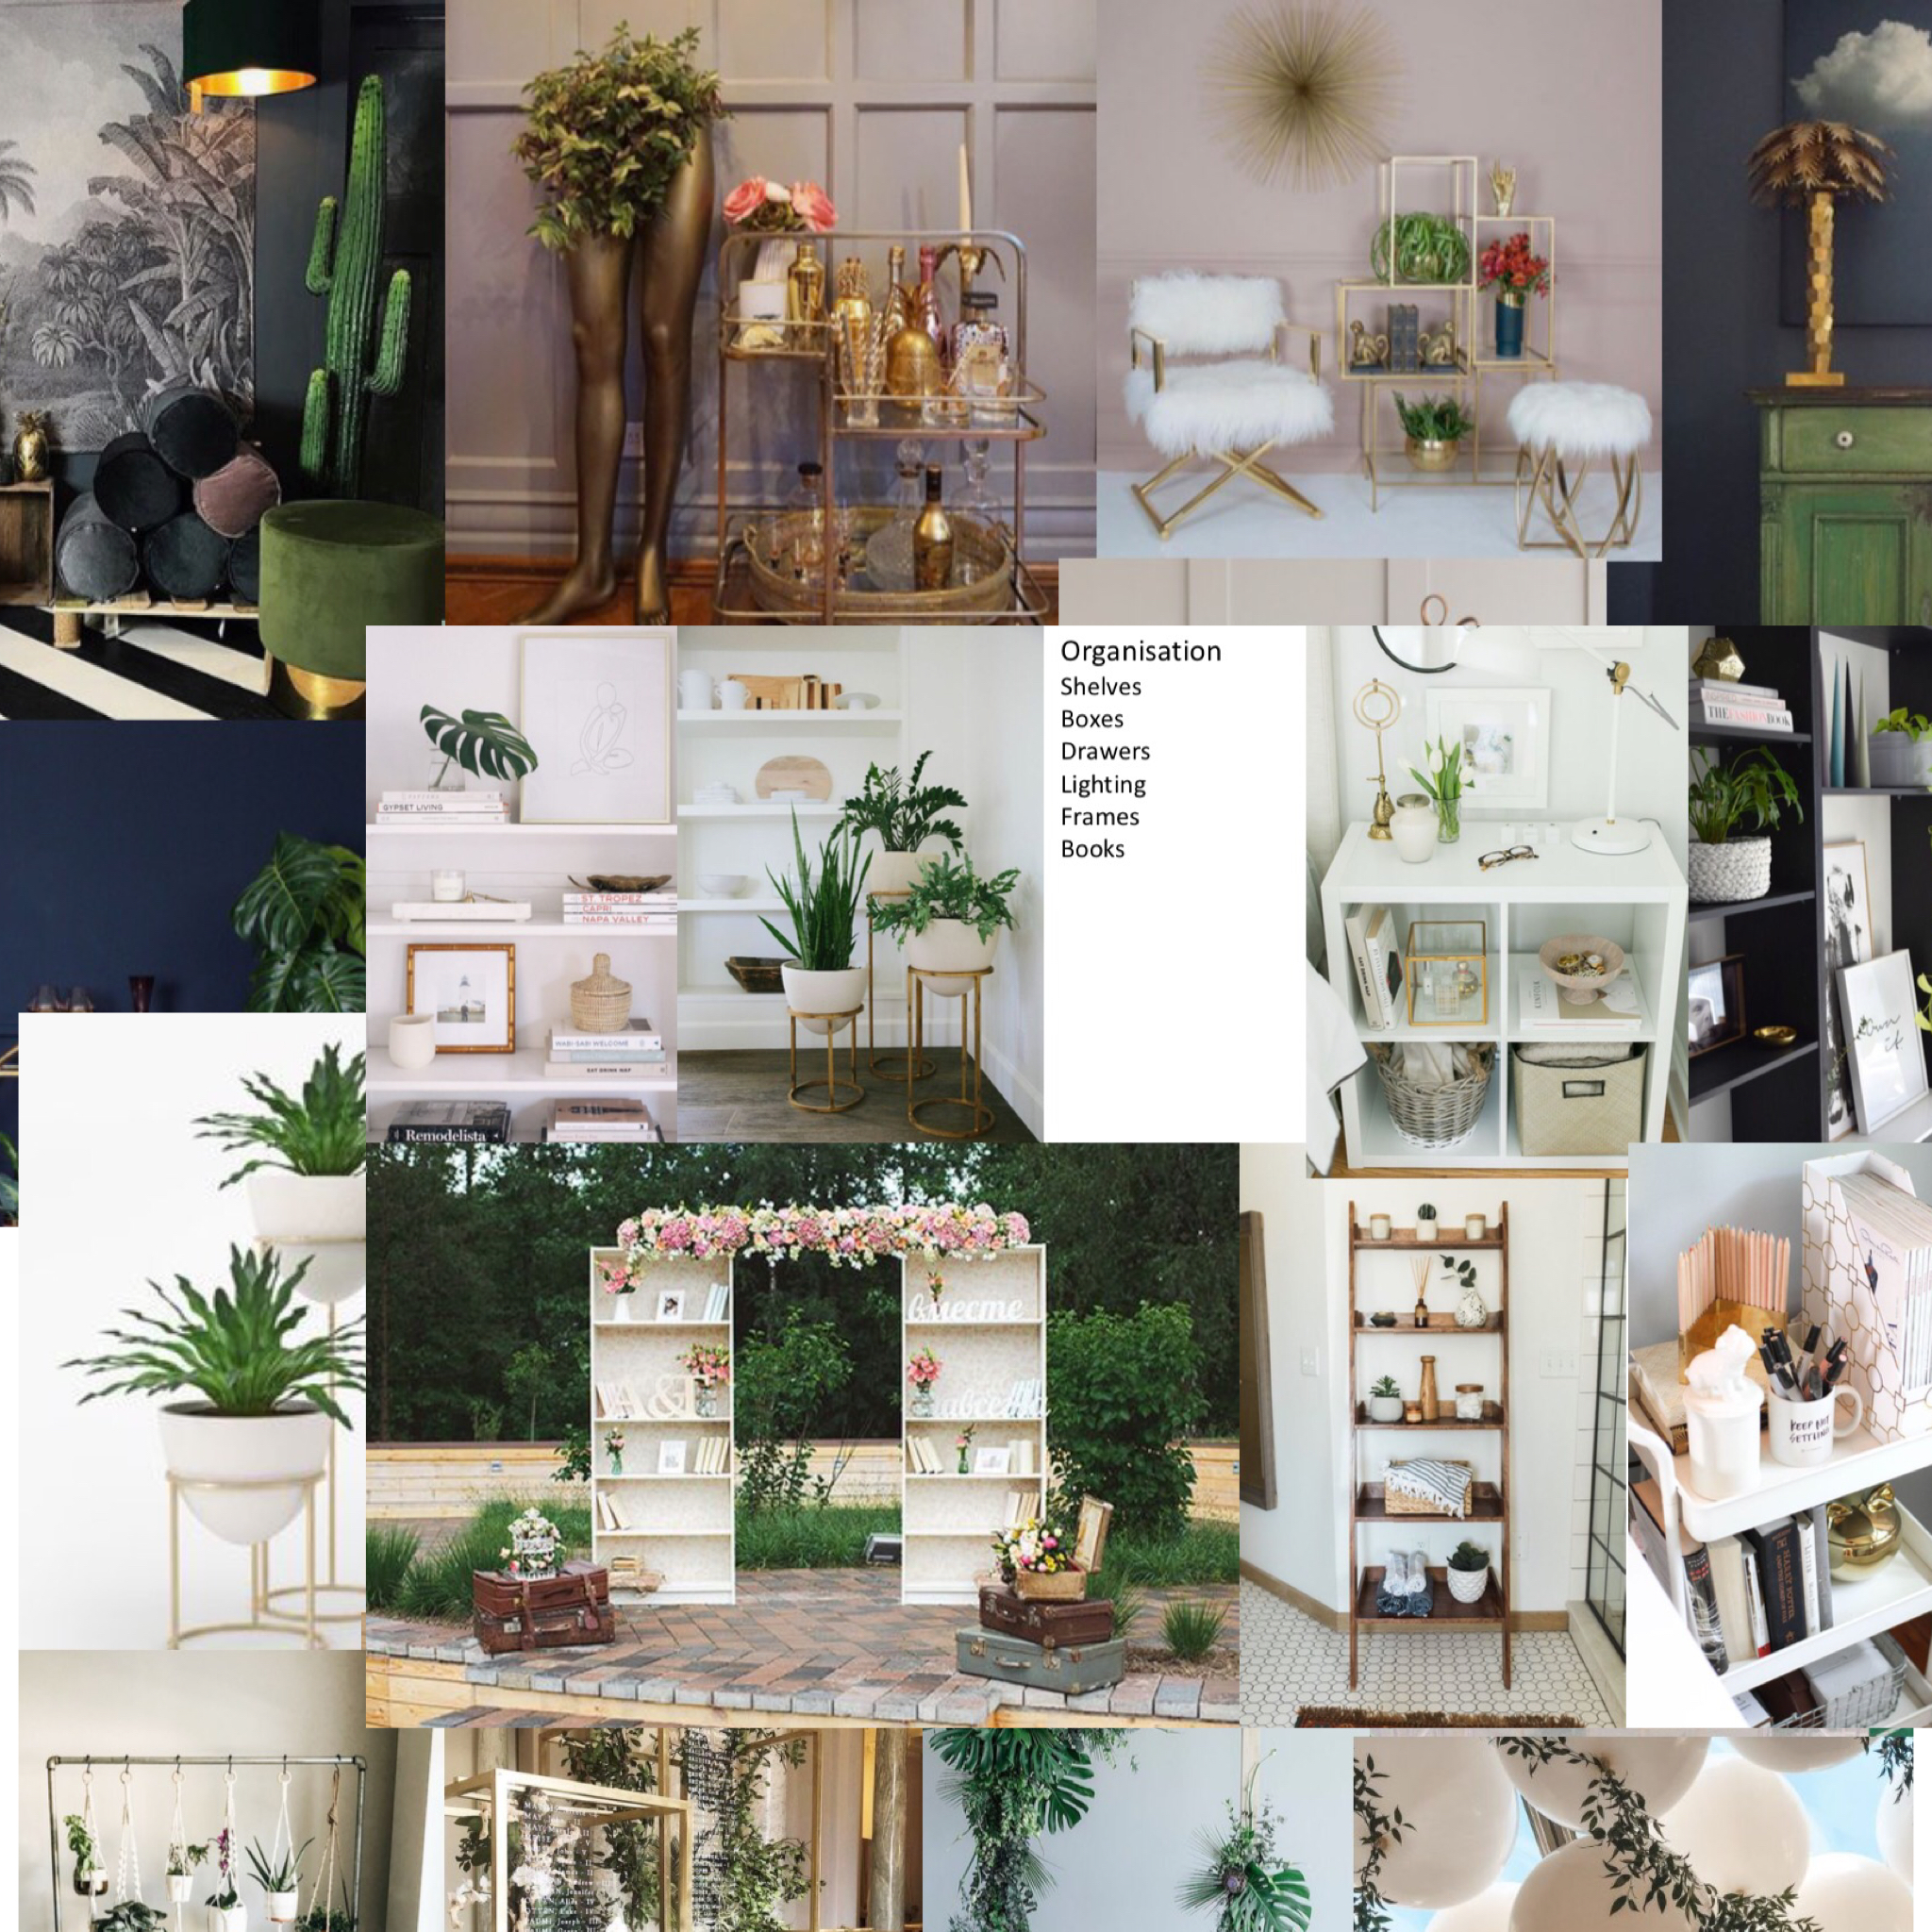 Some of the moodboards